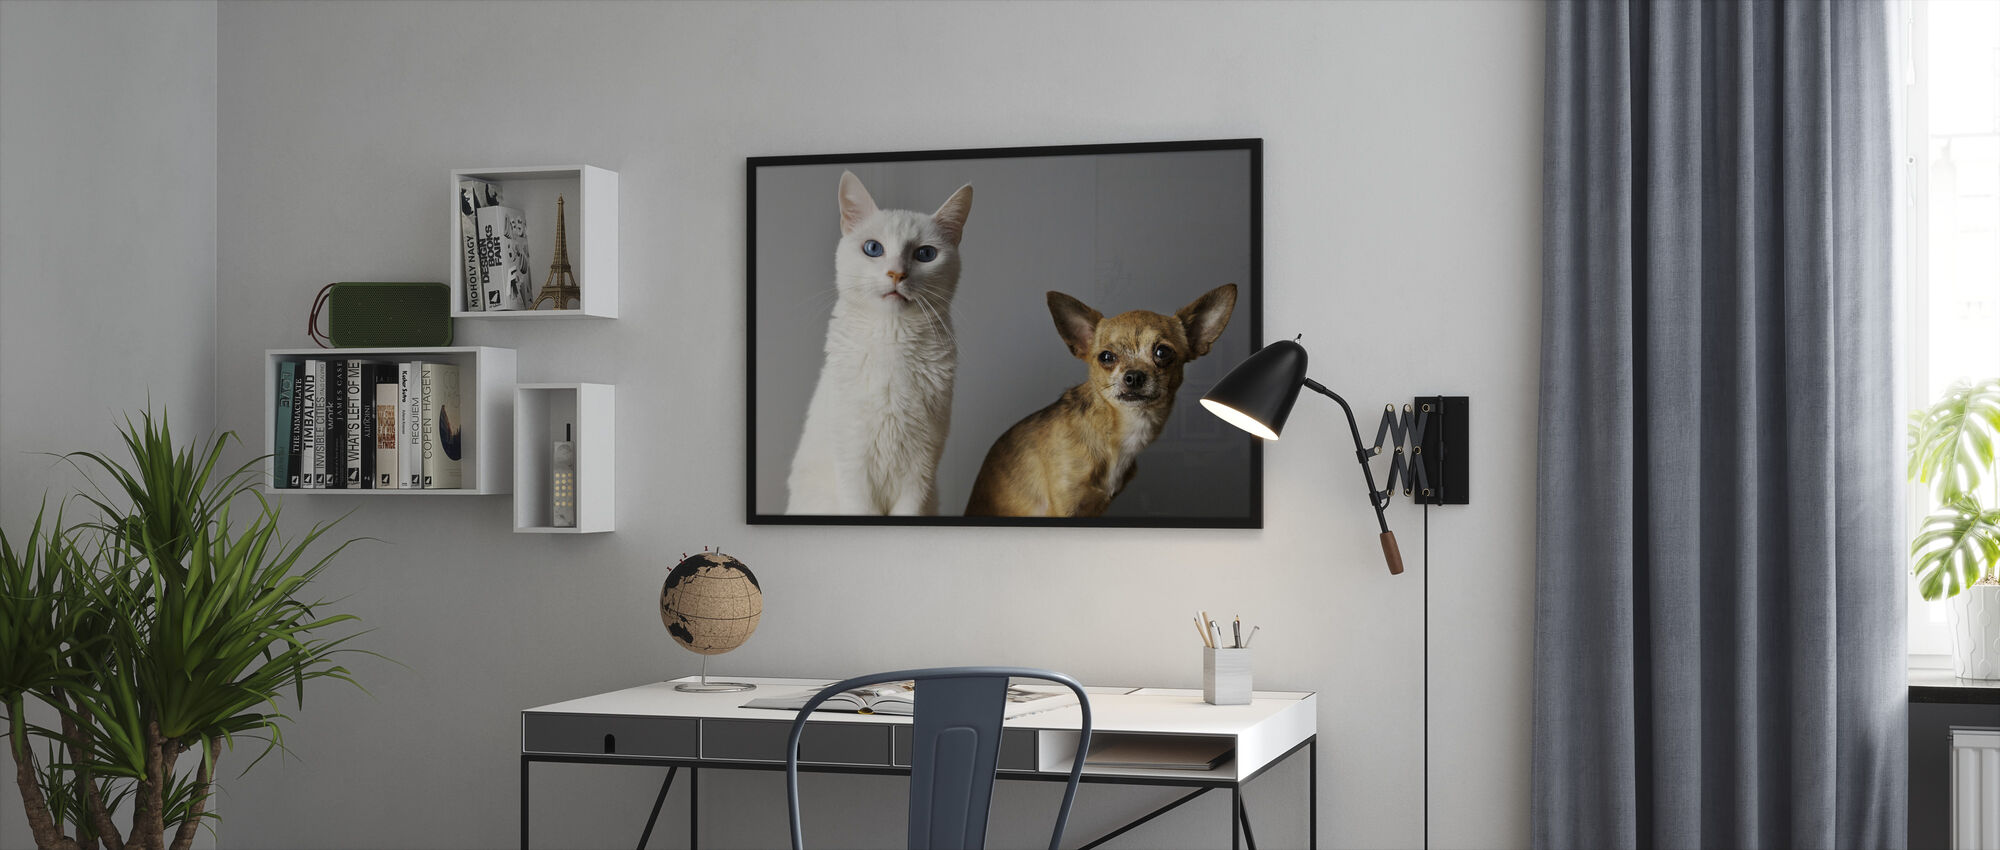 Duo of Cat and Dog - Framed print - Office